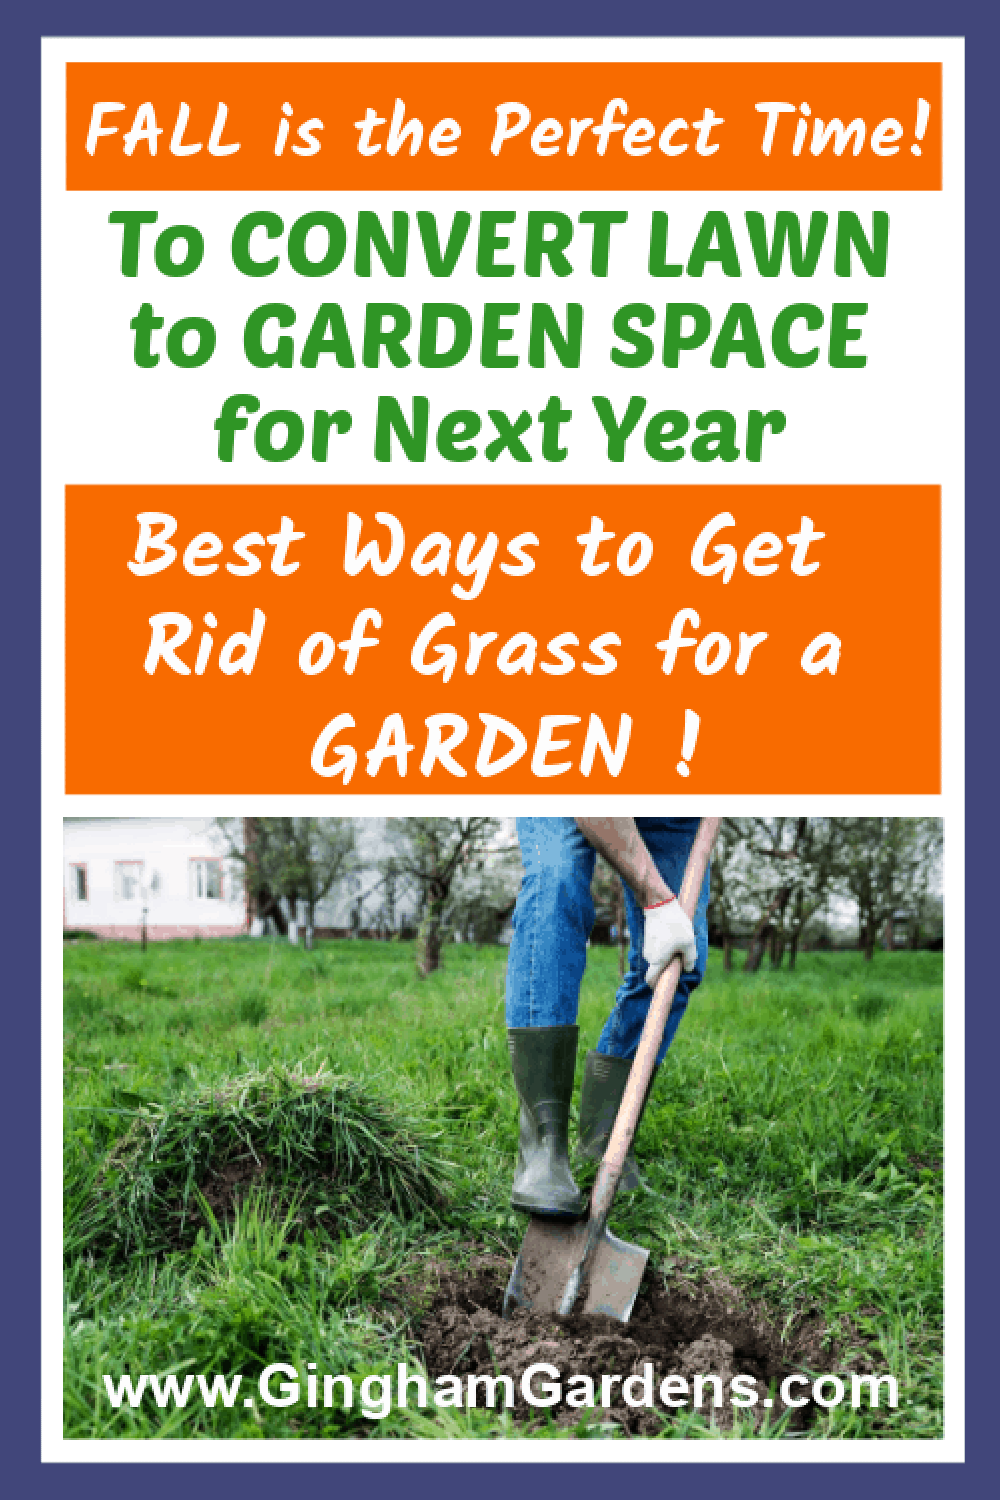 Image of a Gardener Digging with a Shovel with text overlay - Convert Lawn to Gardening Space